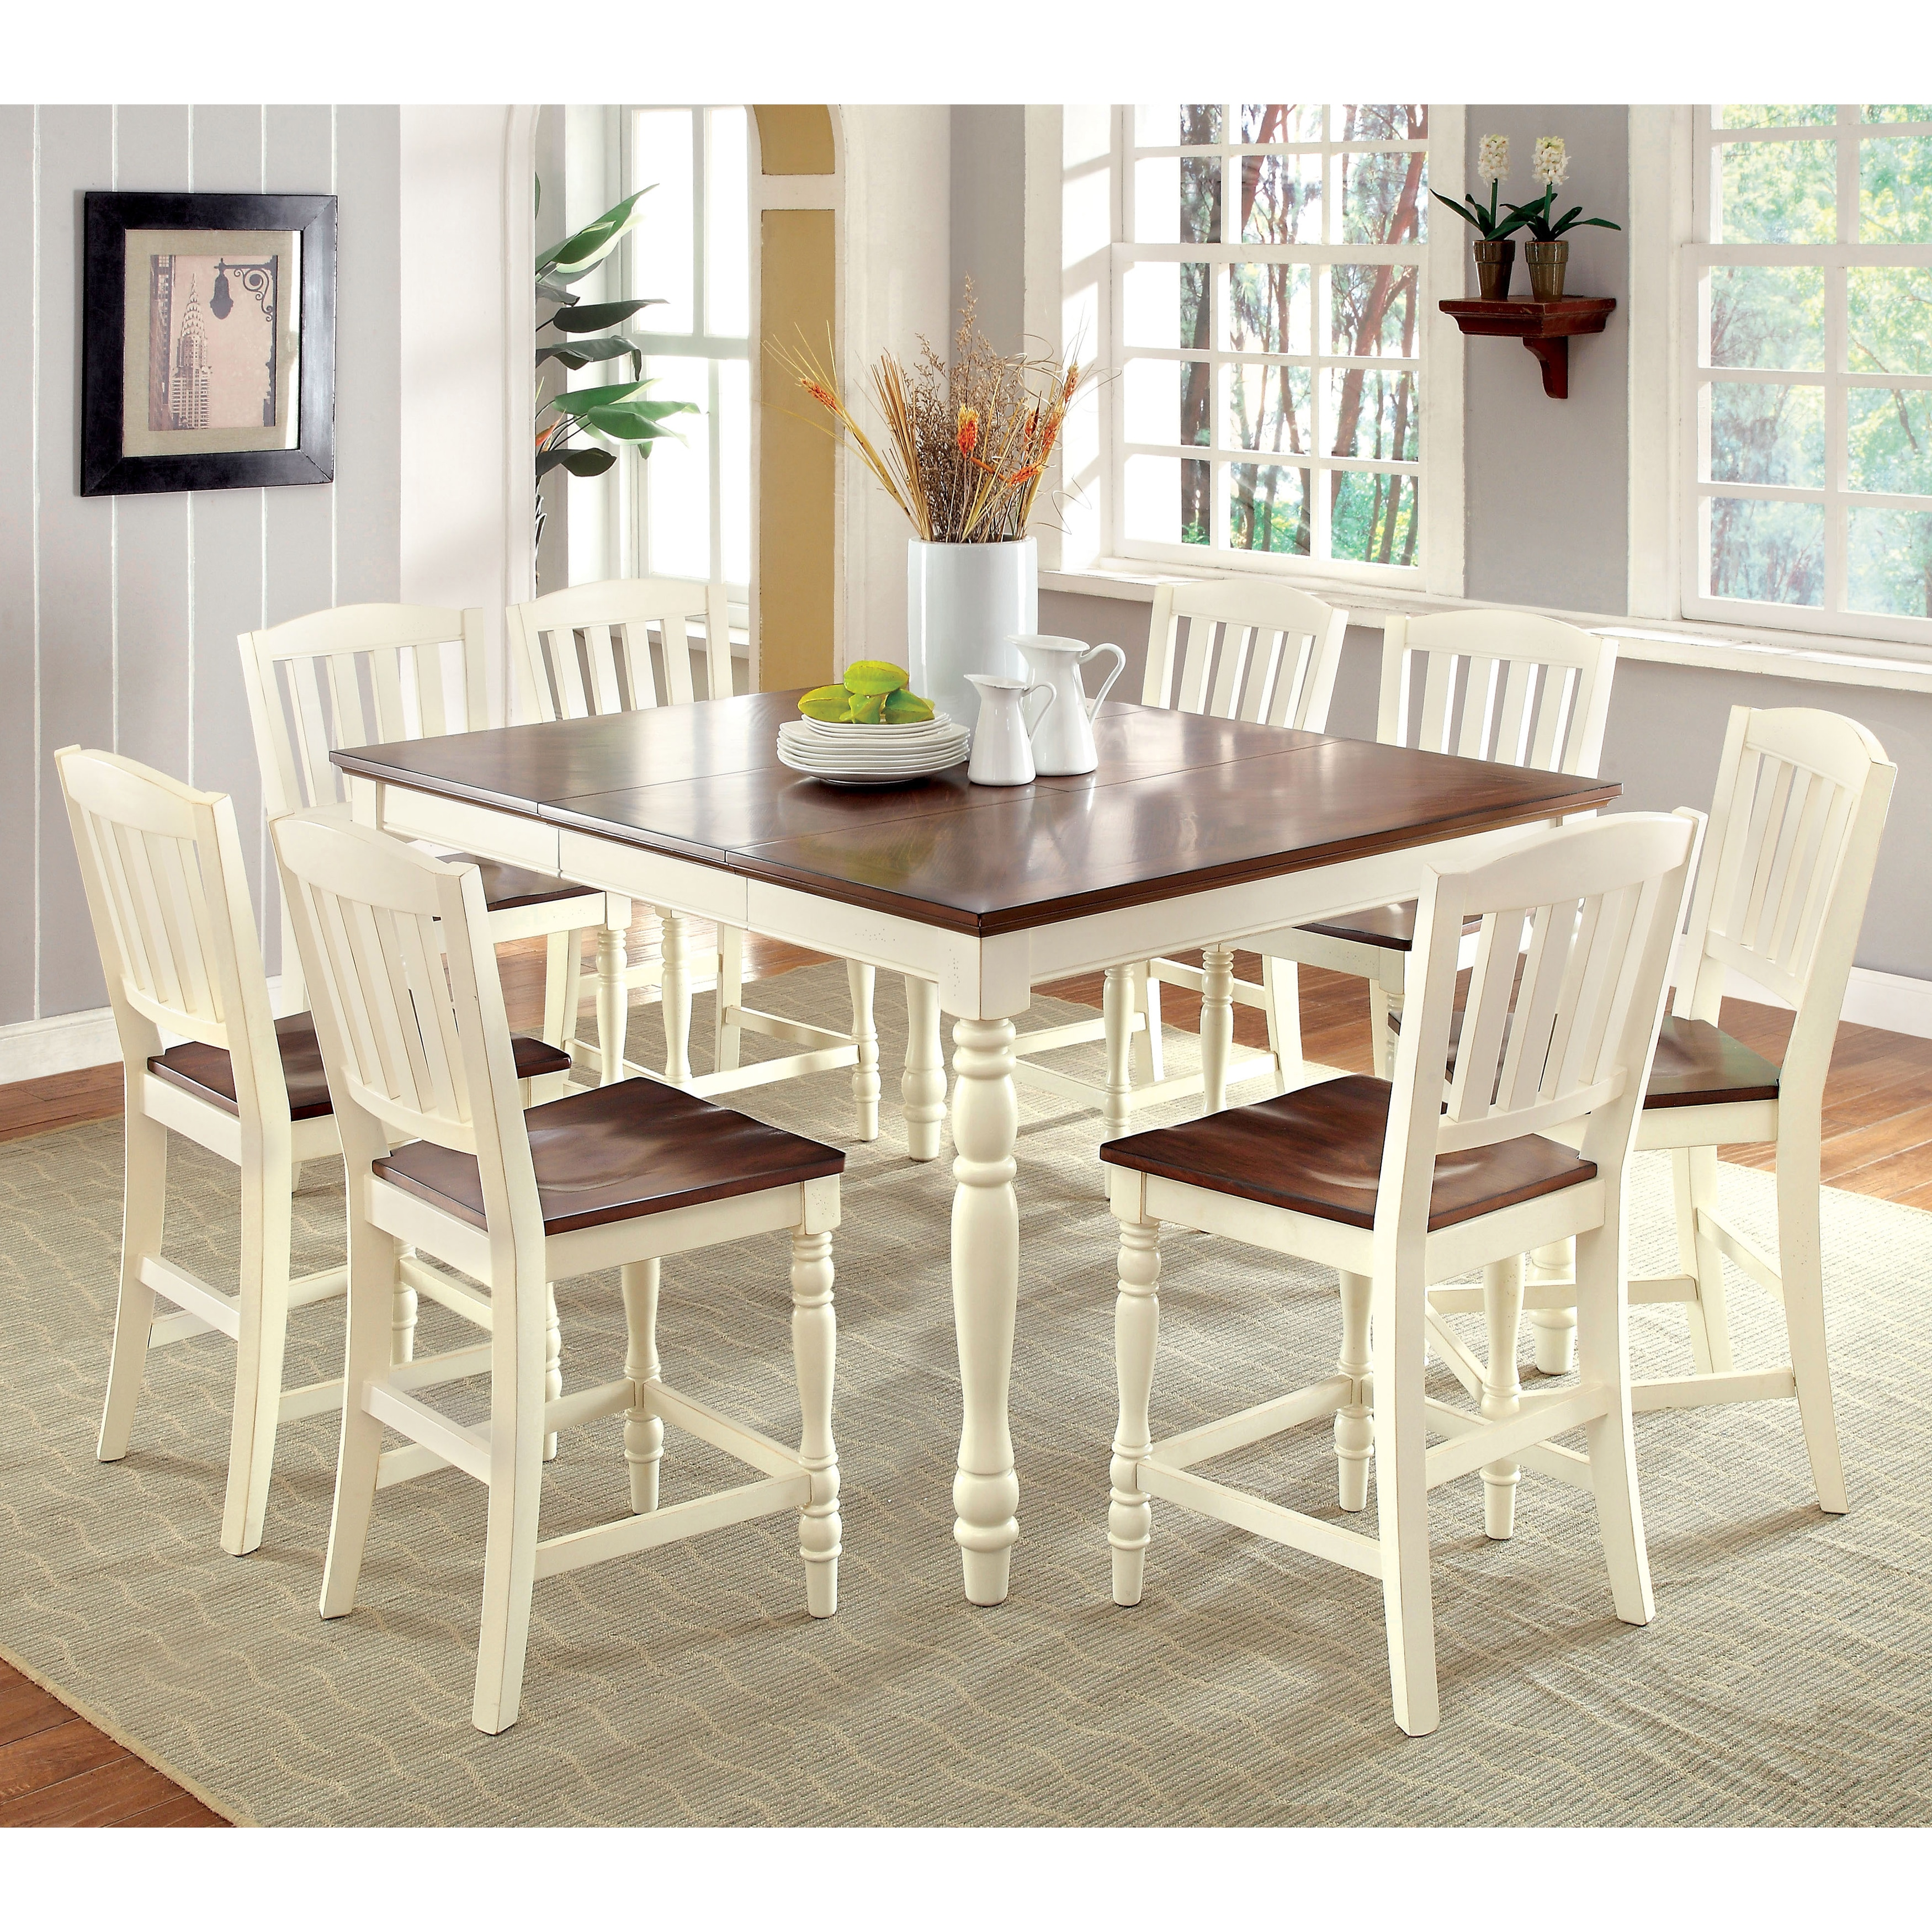 Furniture of America Bethannie 9-Piece Cottage Style Coun...